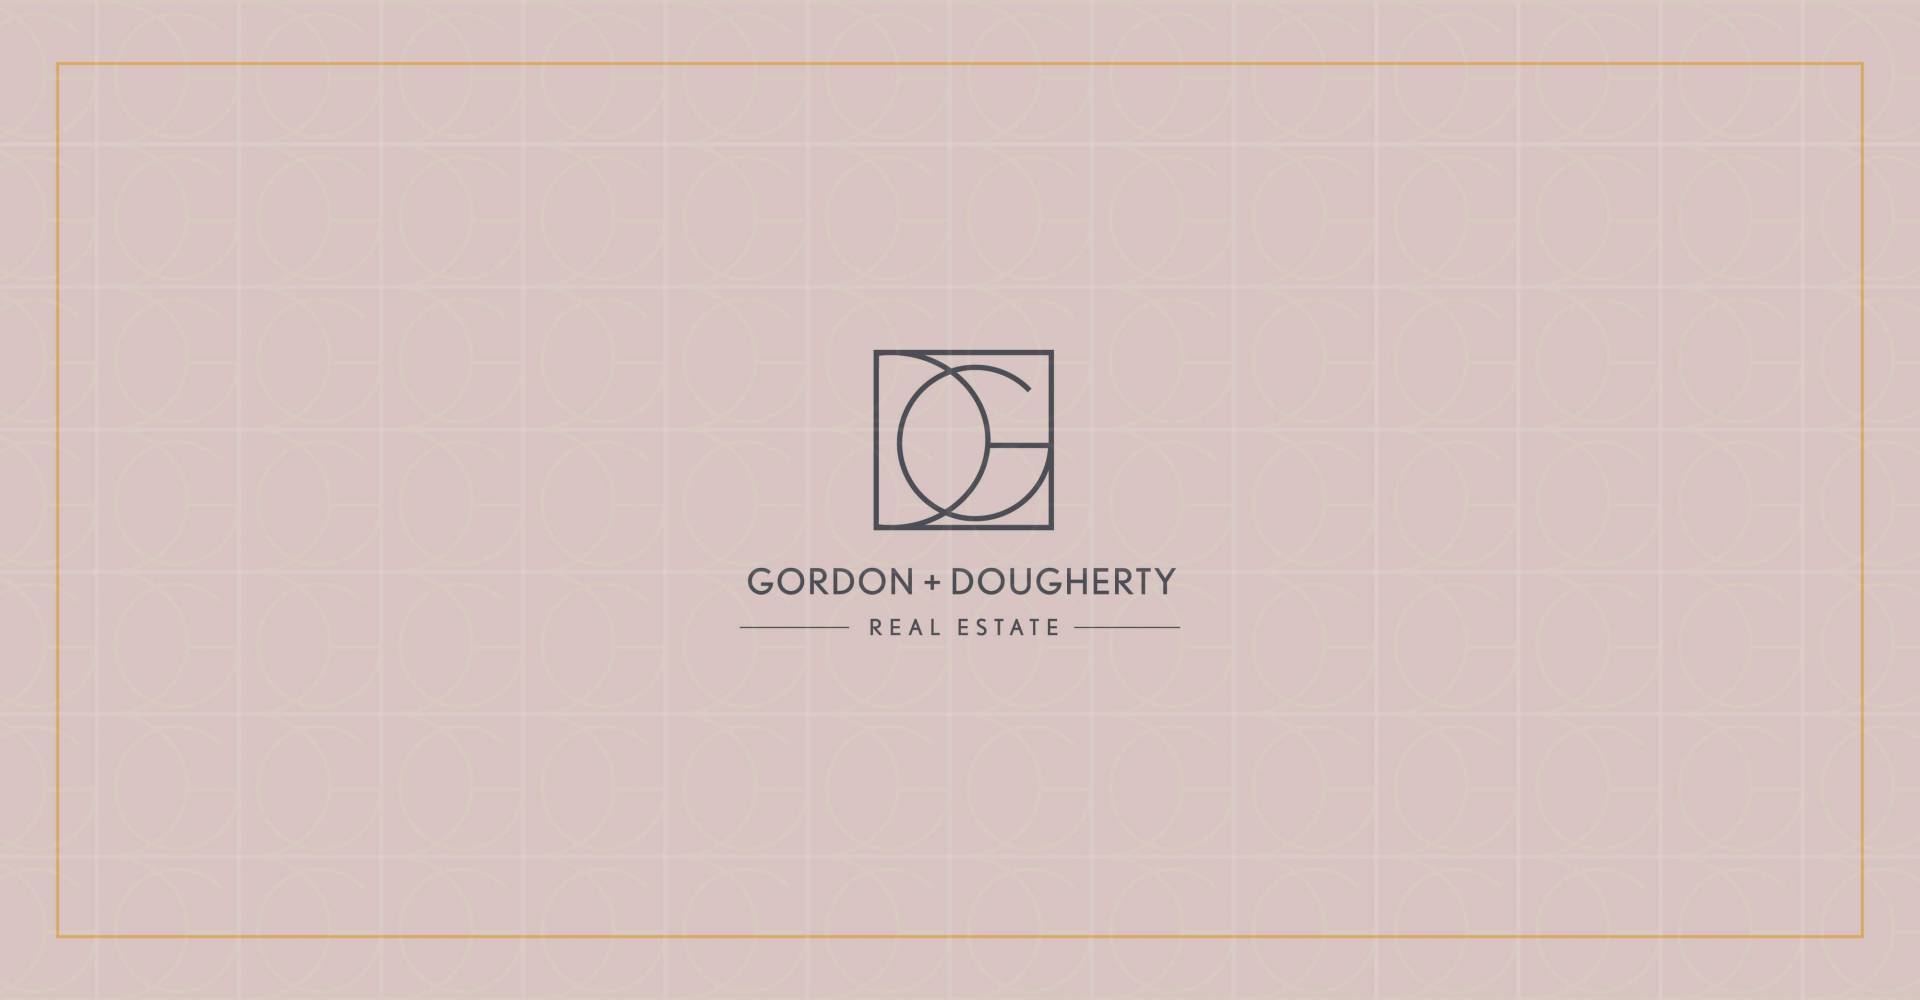 Gordon + Dougherty Real Estate